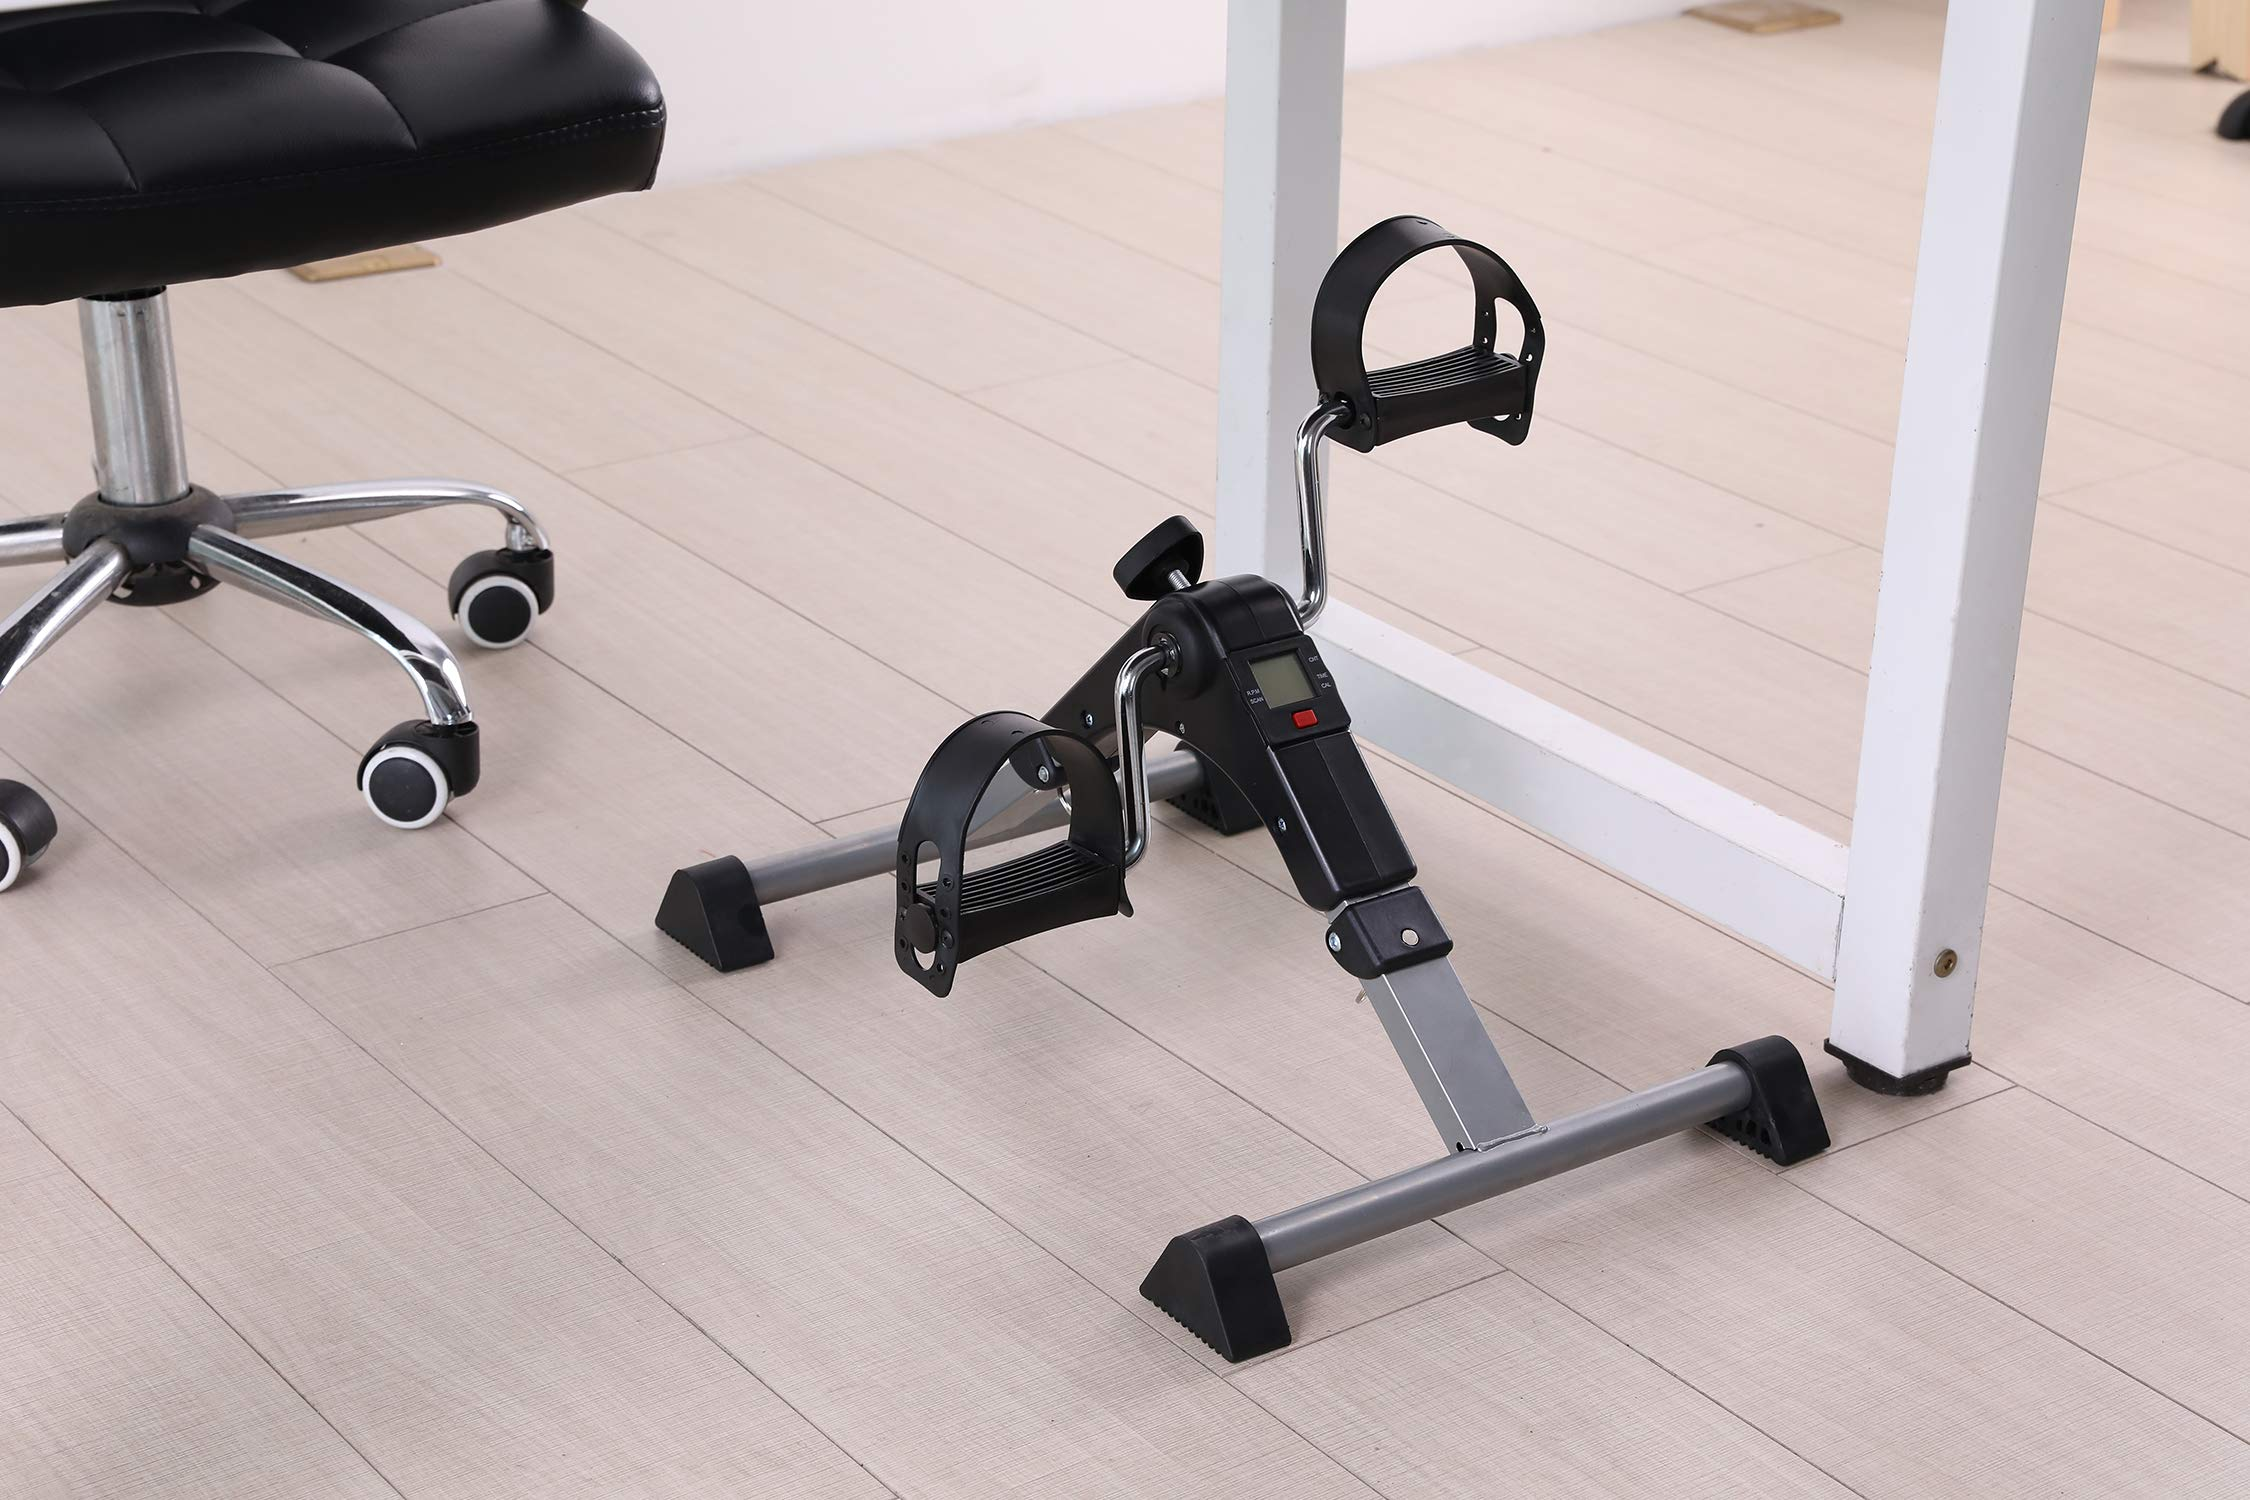 TODO Pedal Exerciser Foot Peddler Desk Bike Foldable with LCD Monitor by TODO (Image #7)